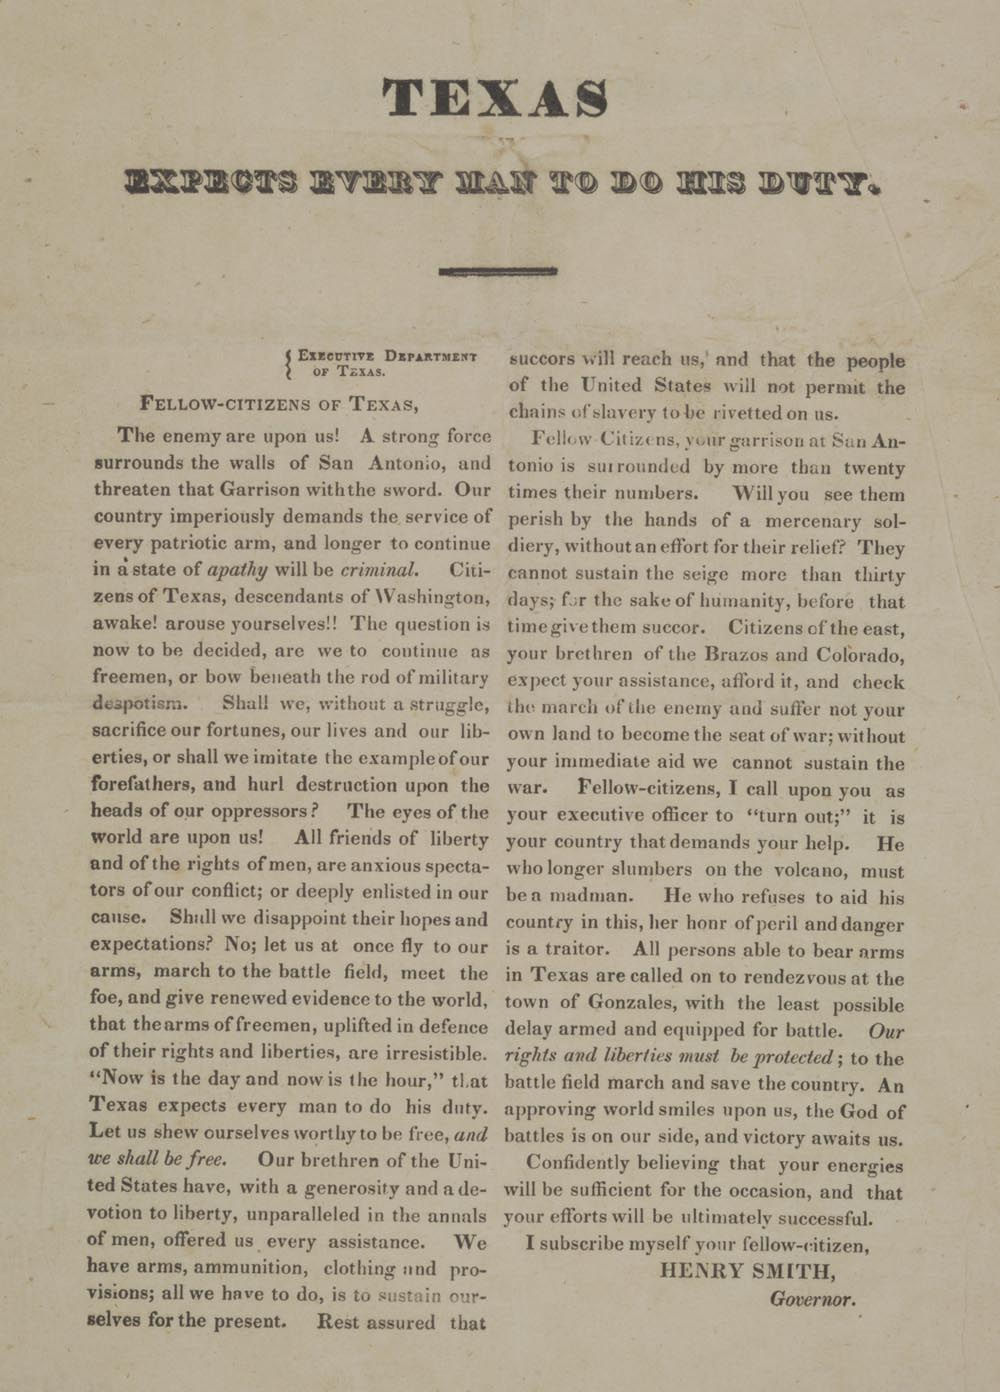 """Henry W. Smith, """"Texas Expects Every Man to Do His Duty,"""" February [28], 1836 (G"""